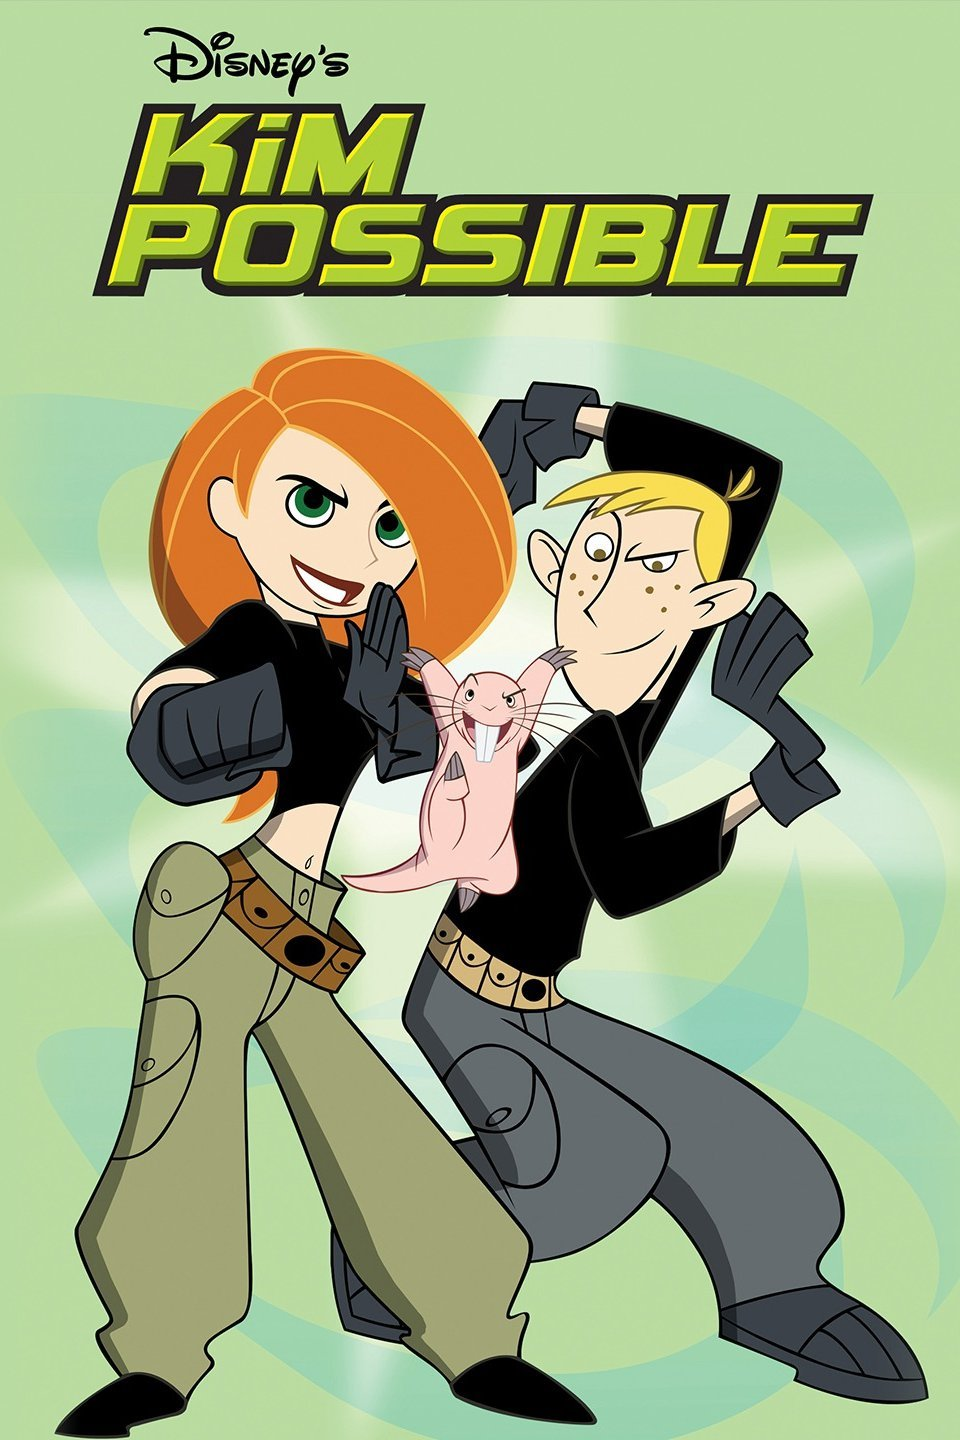 Kim Possible, Ron Stoppable, and Rufus about to fight the bad guys.